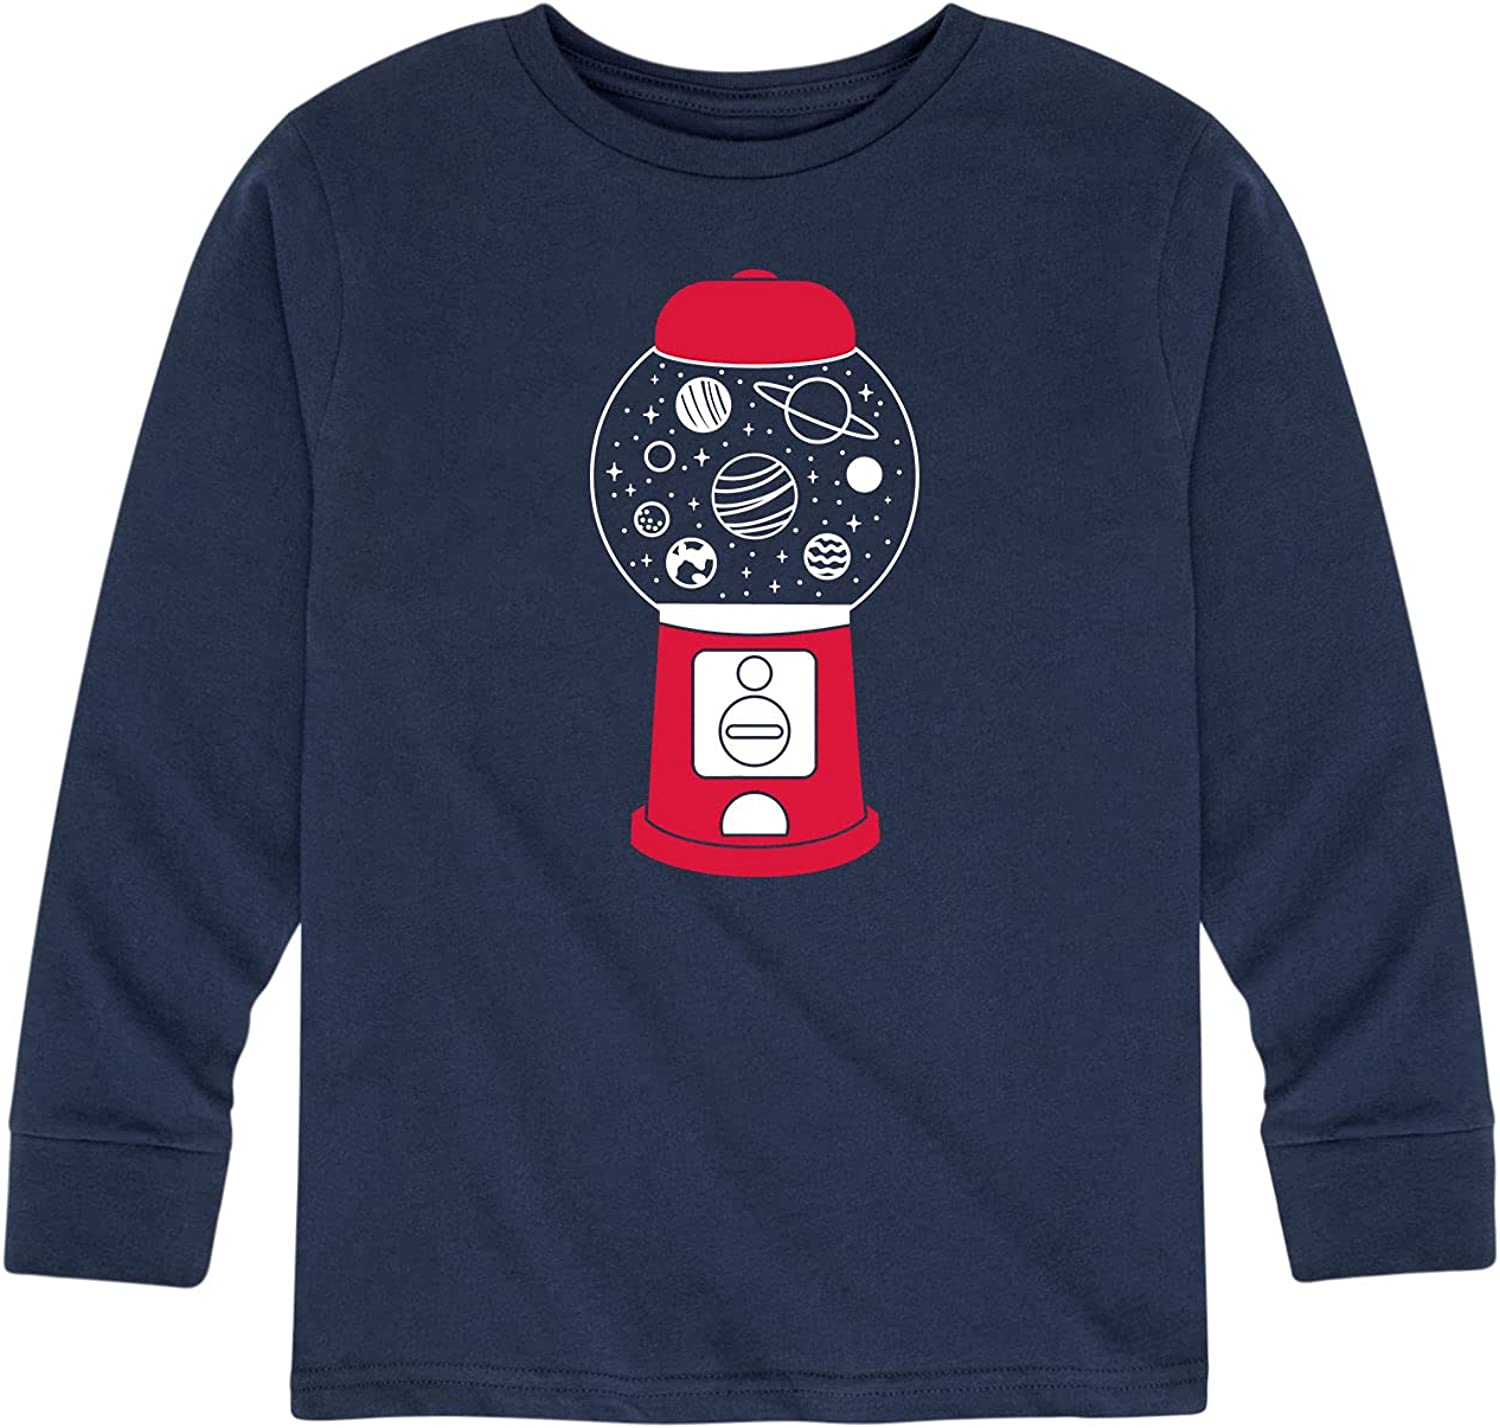 Instant Message Space Gumball Machine - Toddler and Youth Long Sleeve Graphic T-Shirt